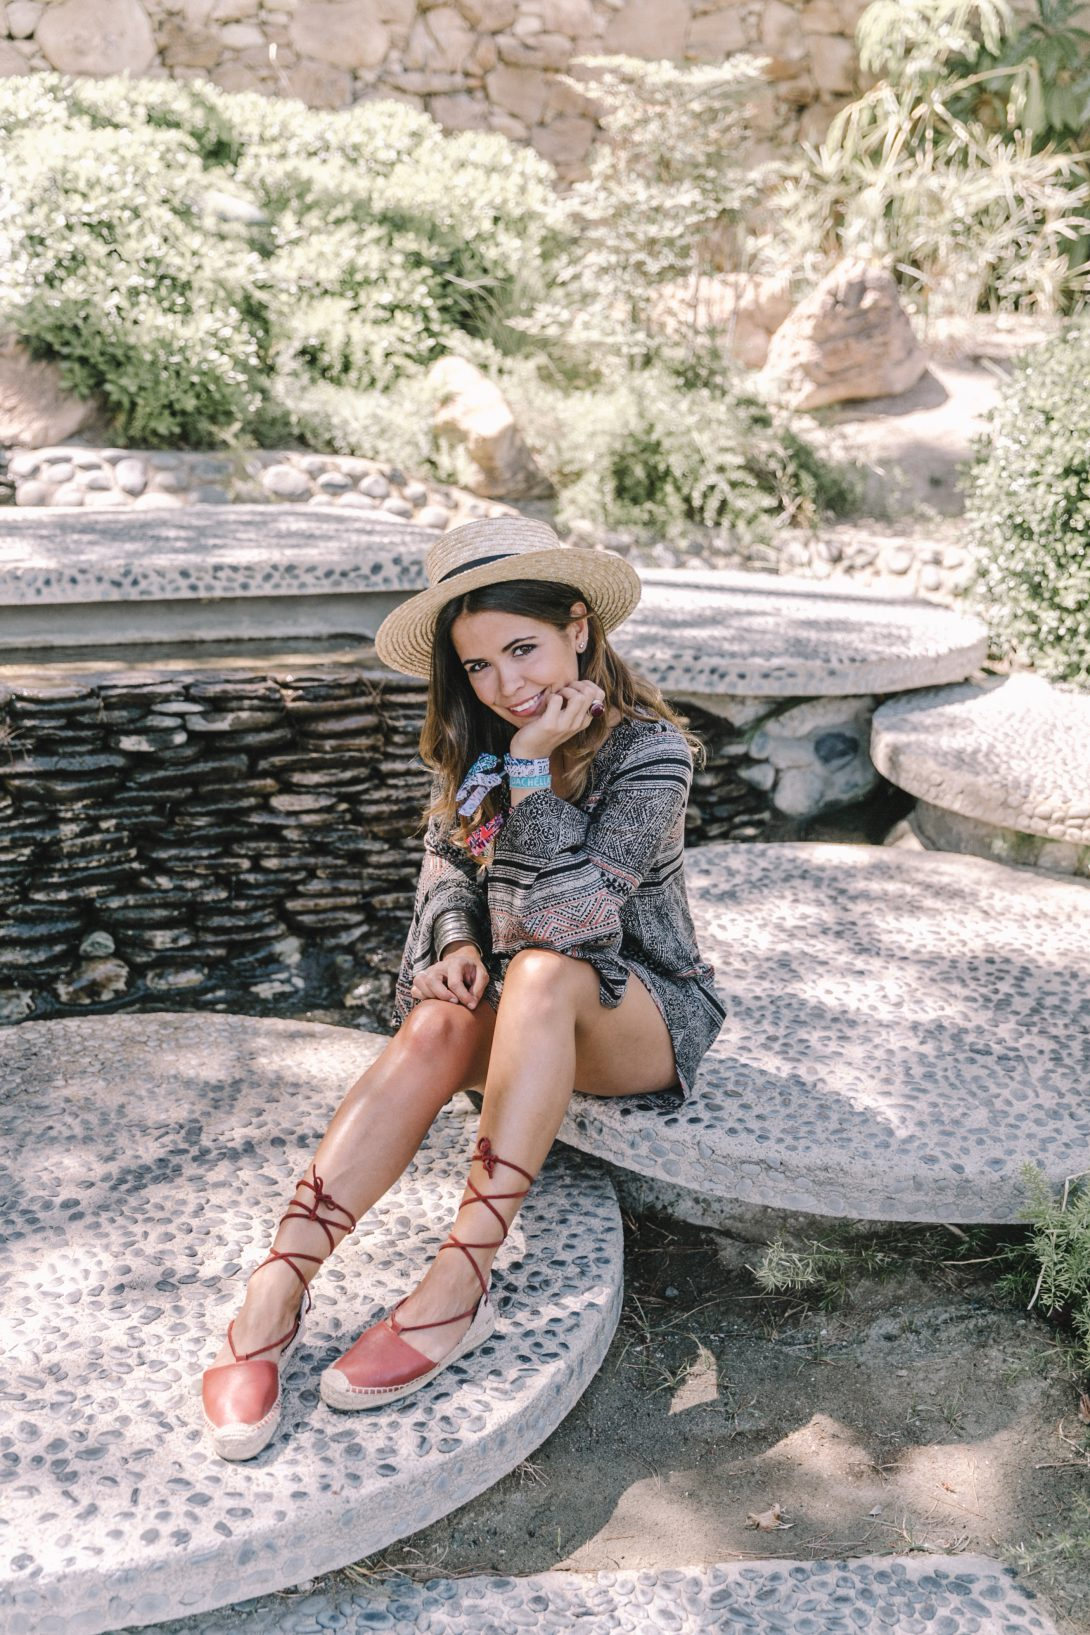 Boho_Dress-Lace_Up_Dress-Lack_of_Color-Revolve_Clothing-Straw_Hat-Soludos_Espadrilles-Palm_Springs-Outfit-Collage_Vintage-9